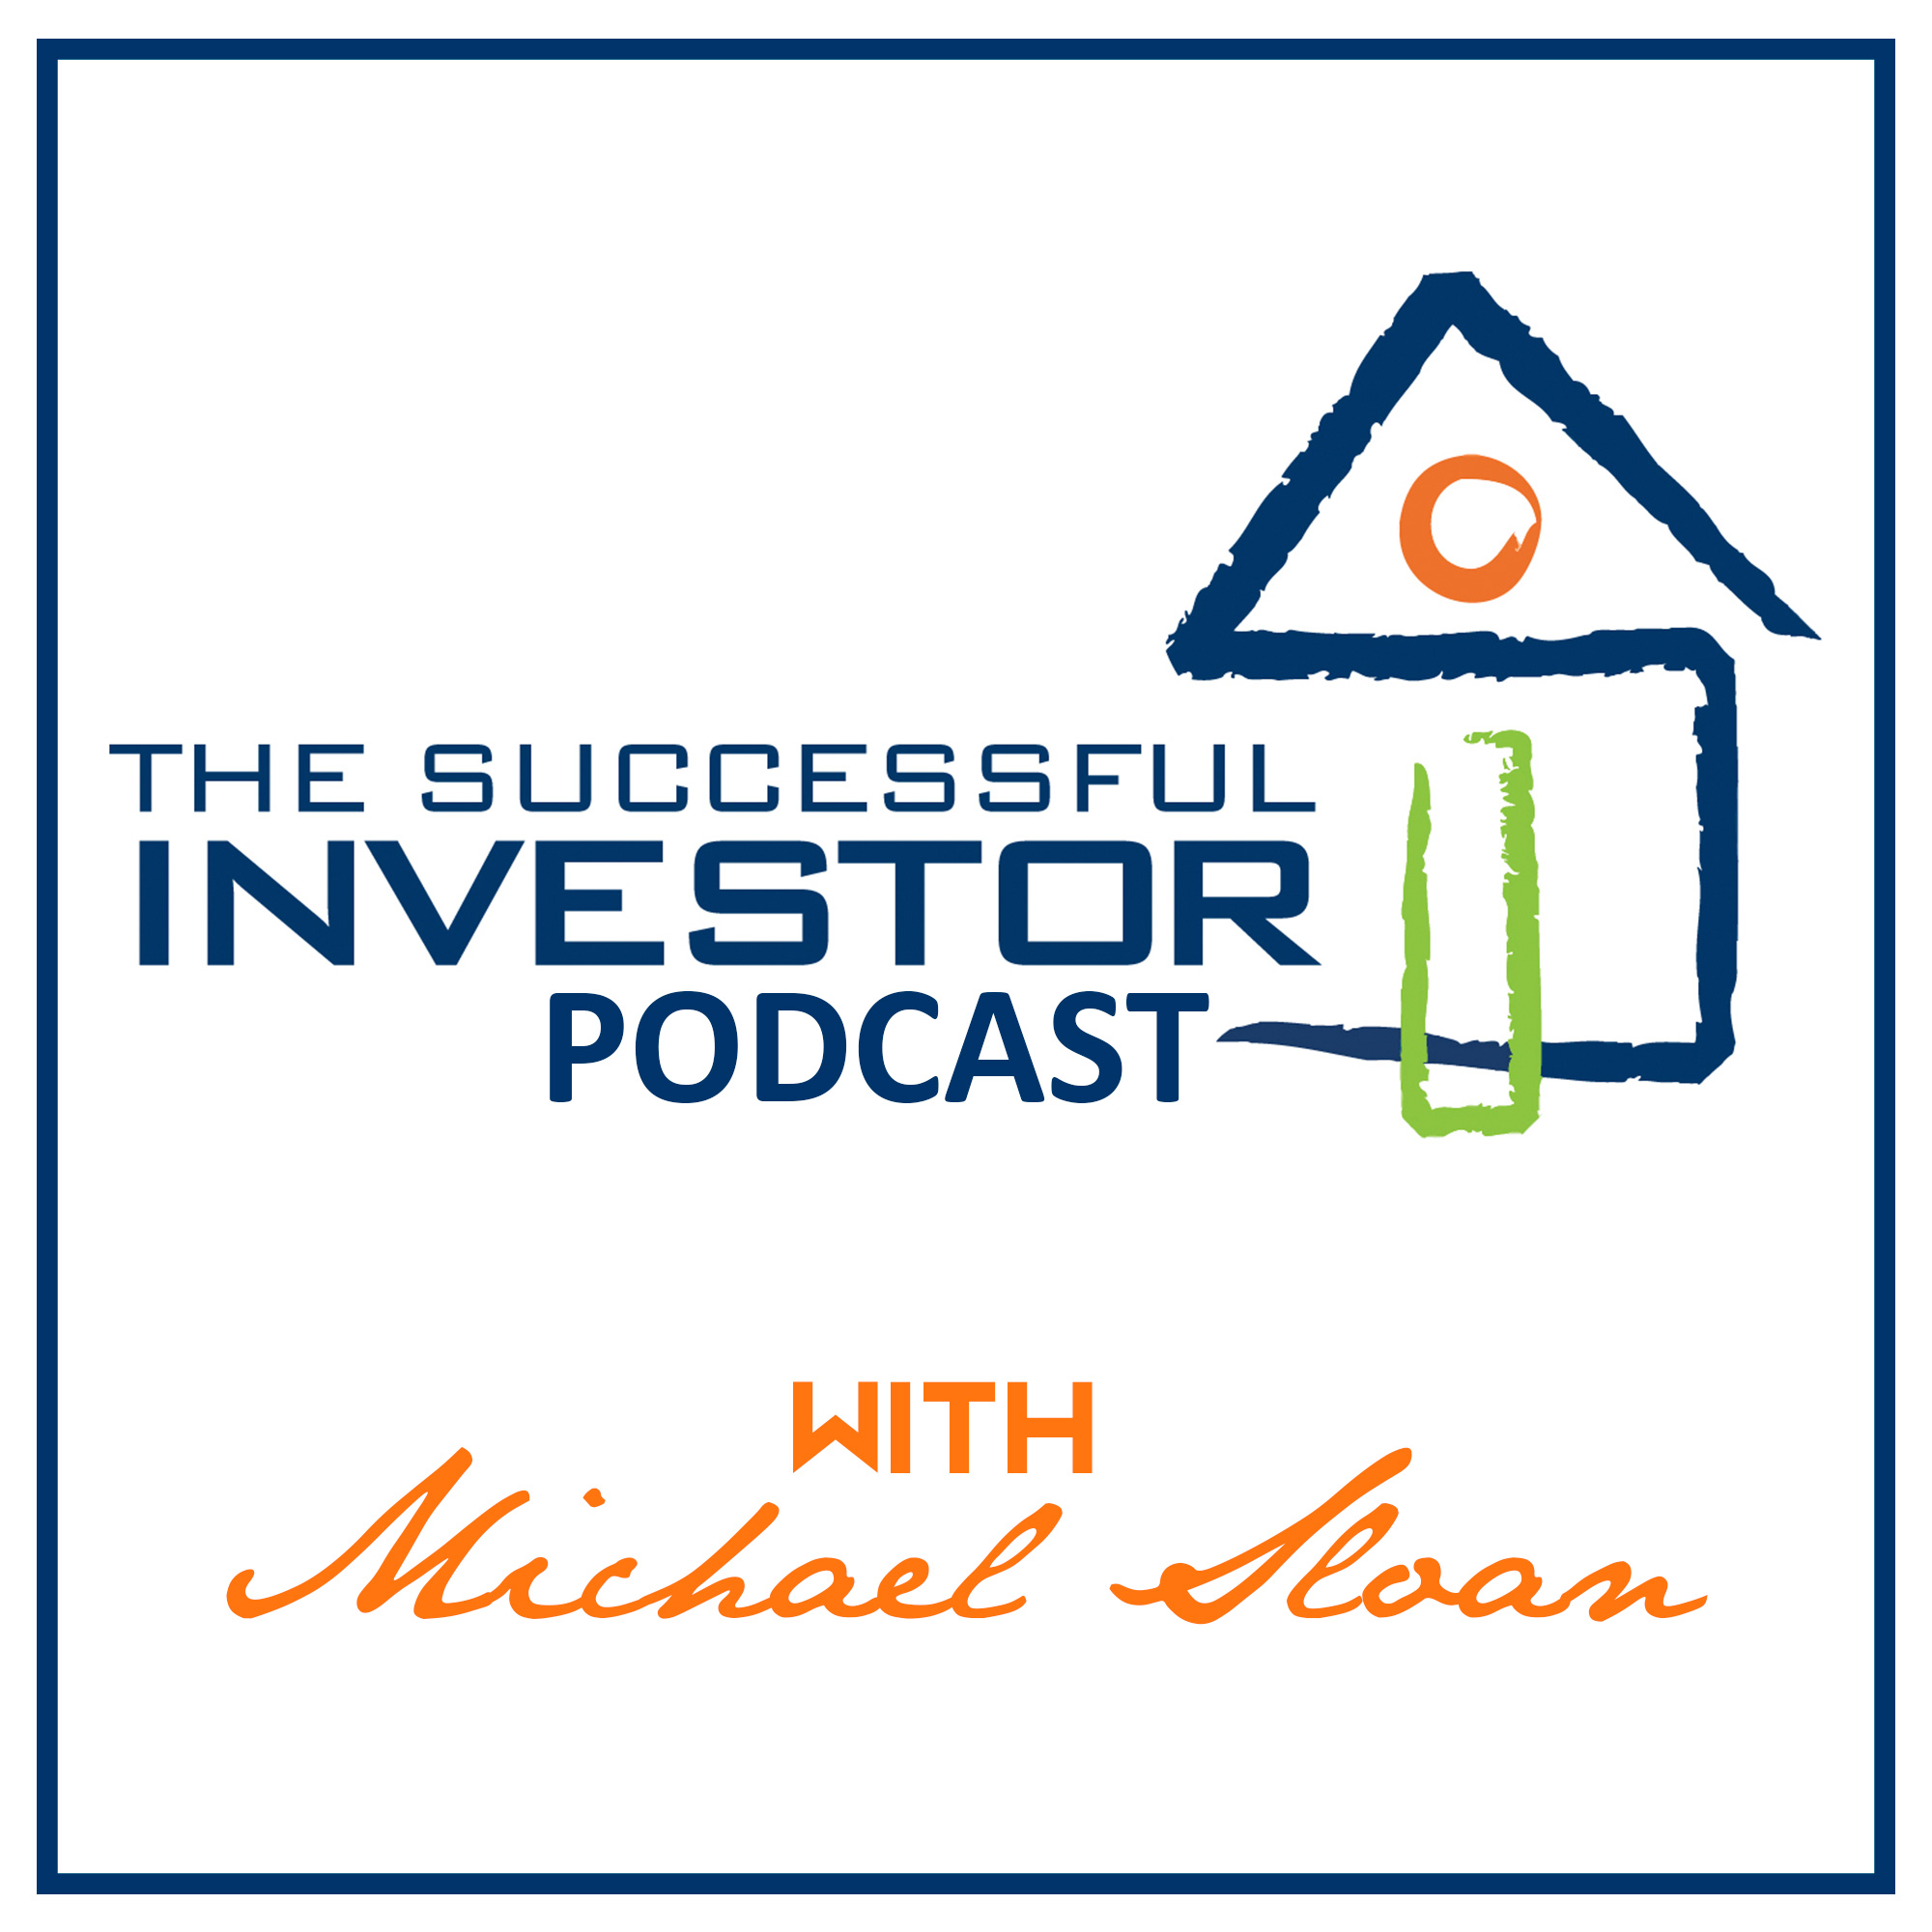 The Successful Investor Podcast